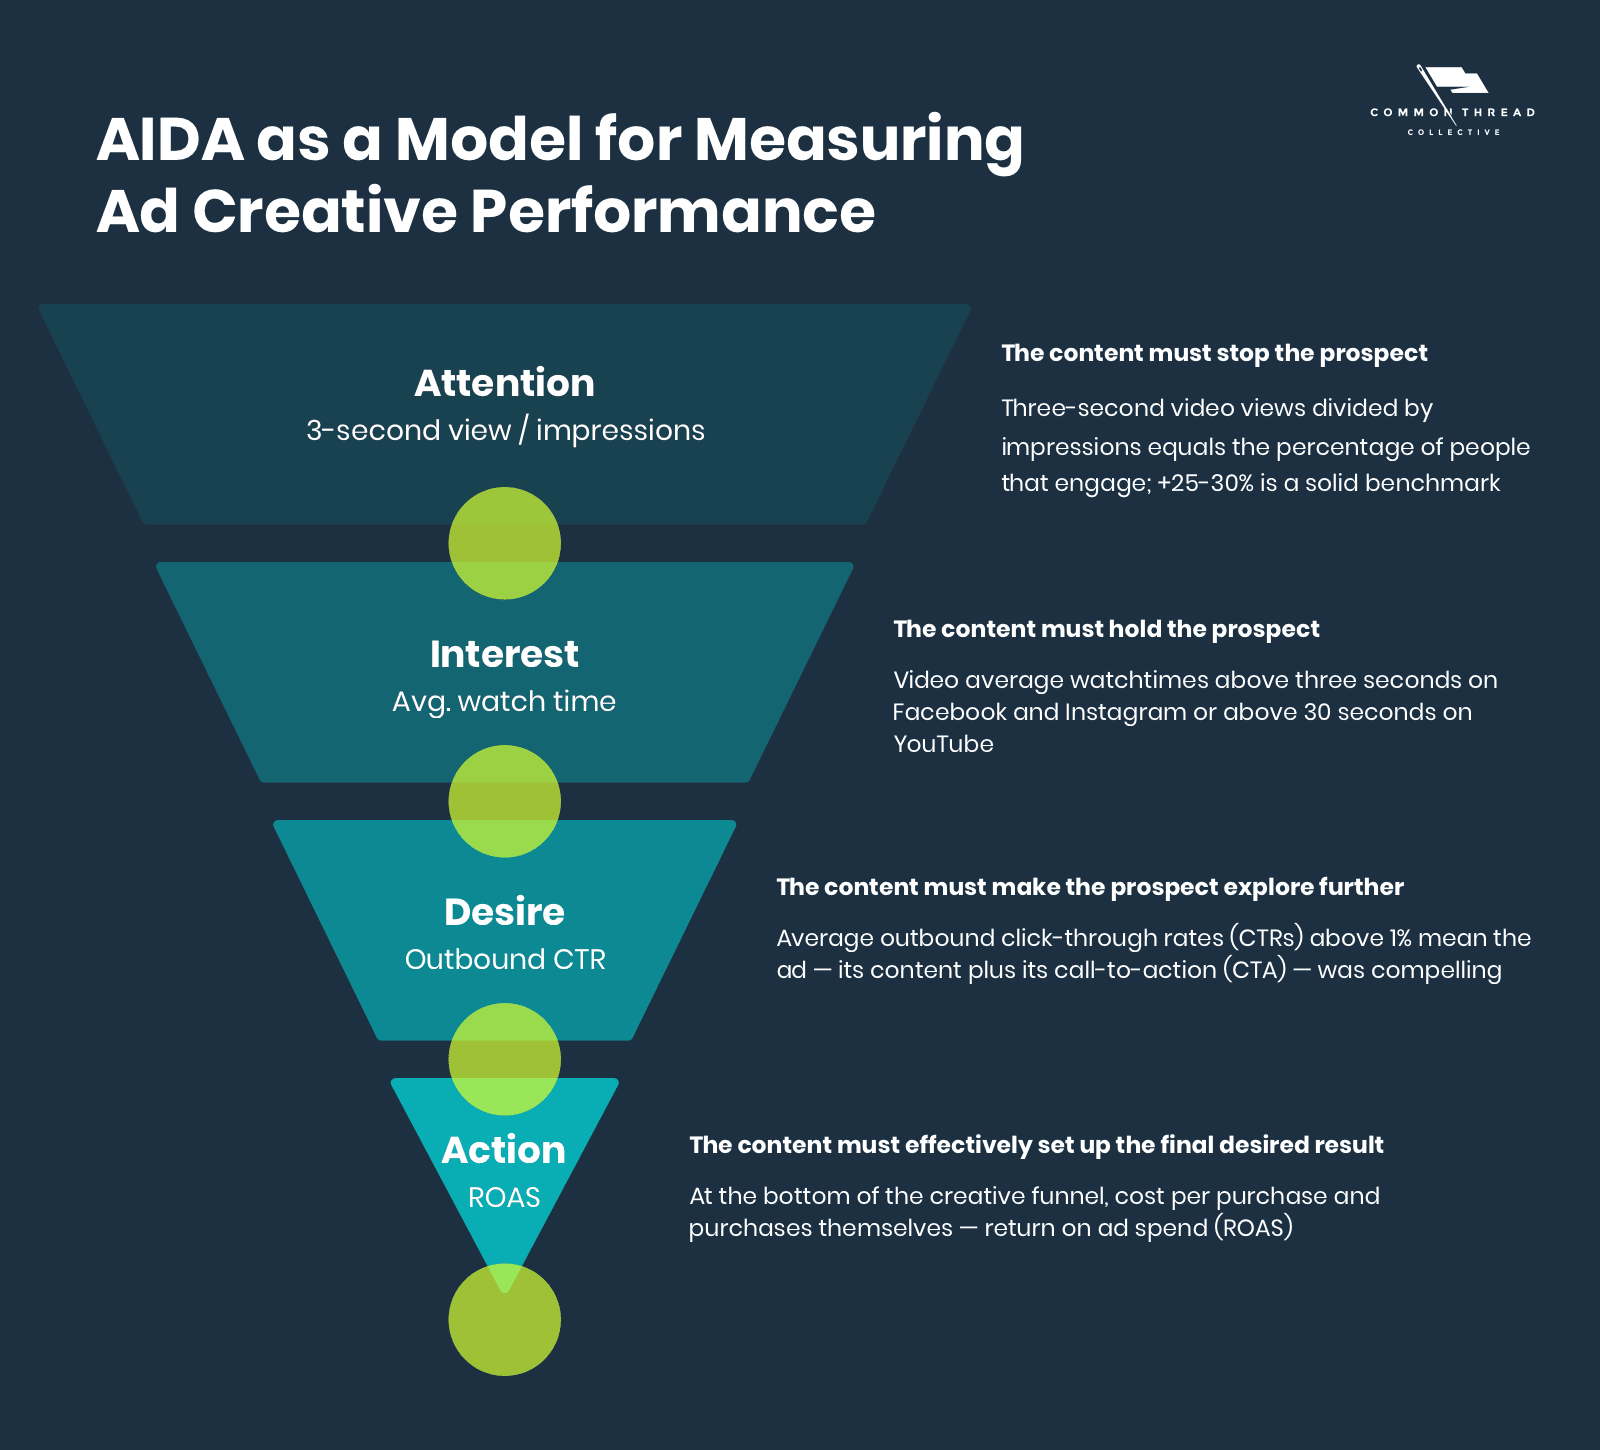 AIDA as a Model for Measuring Ad Creative Performance